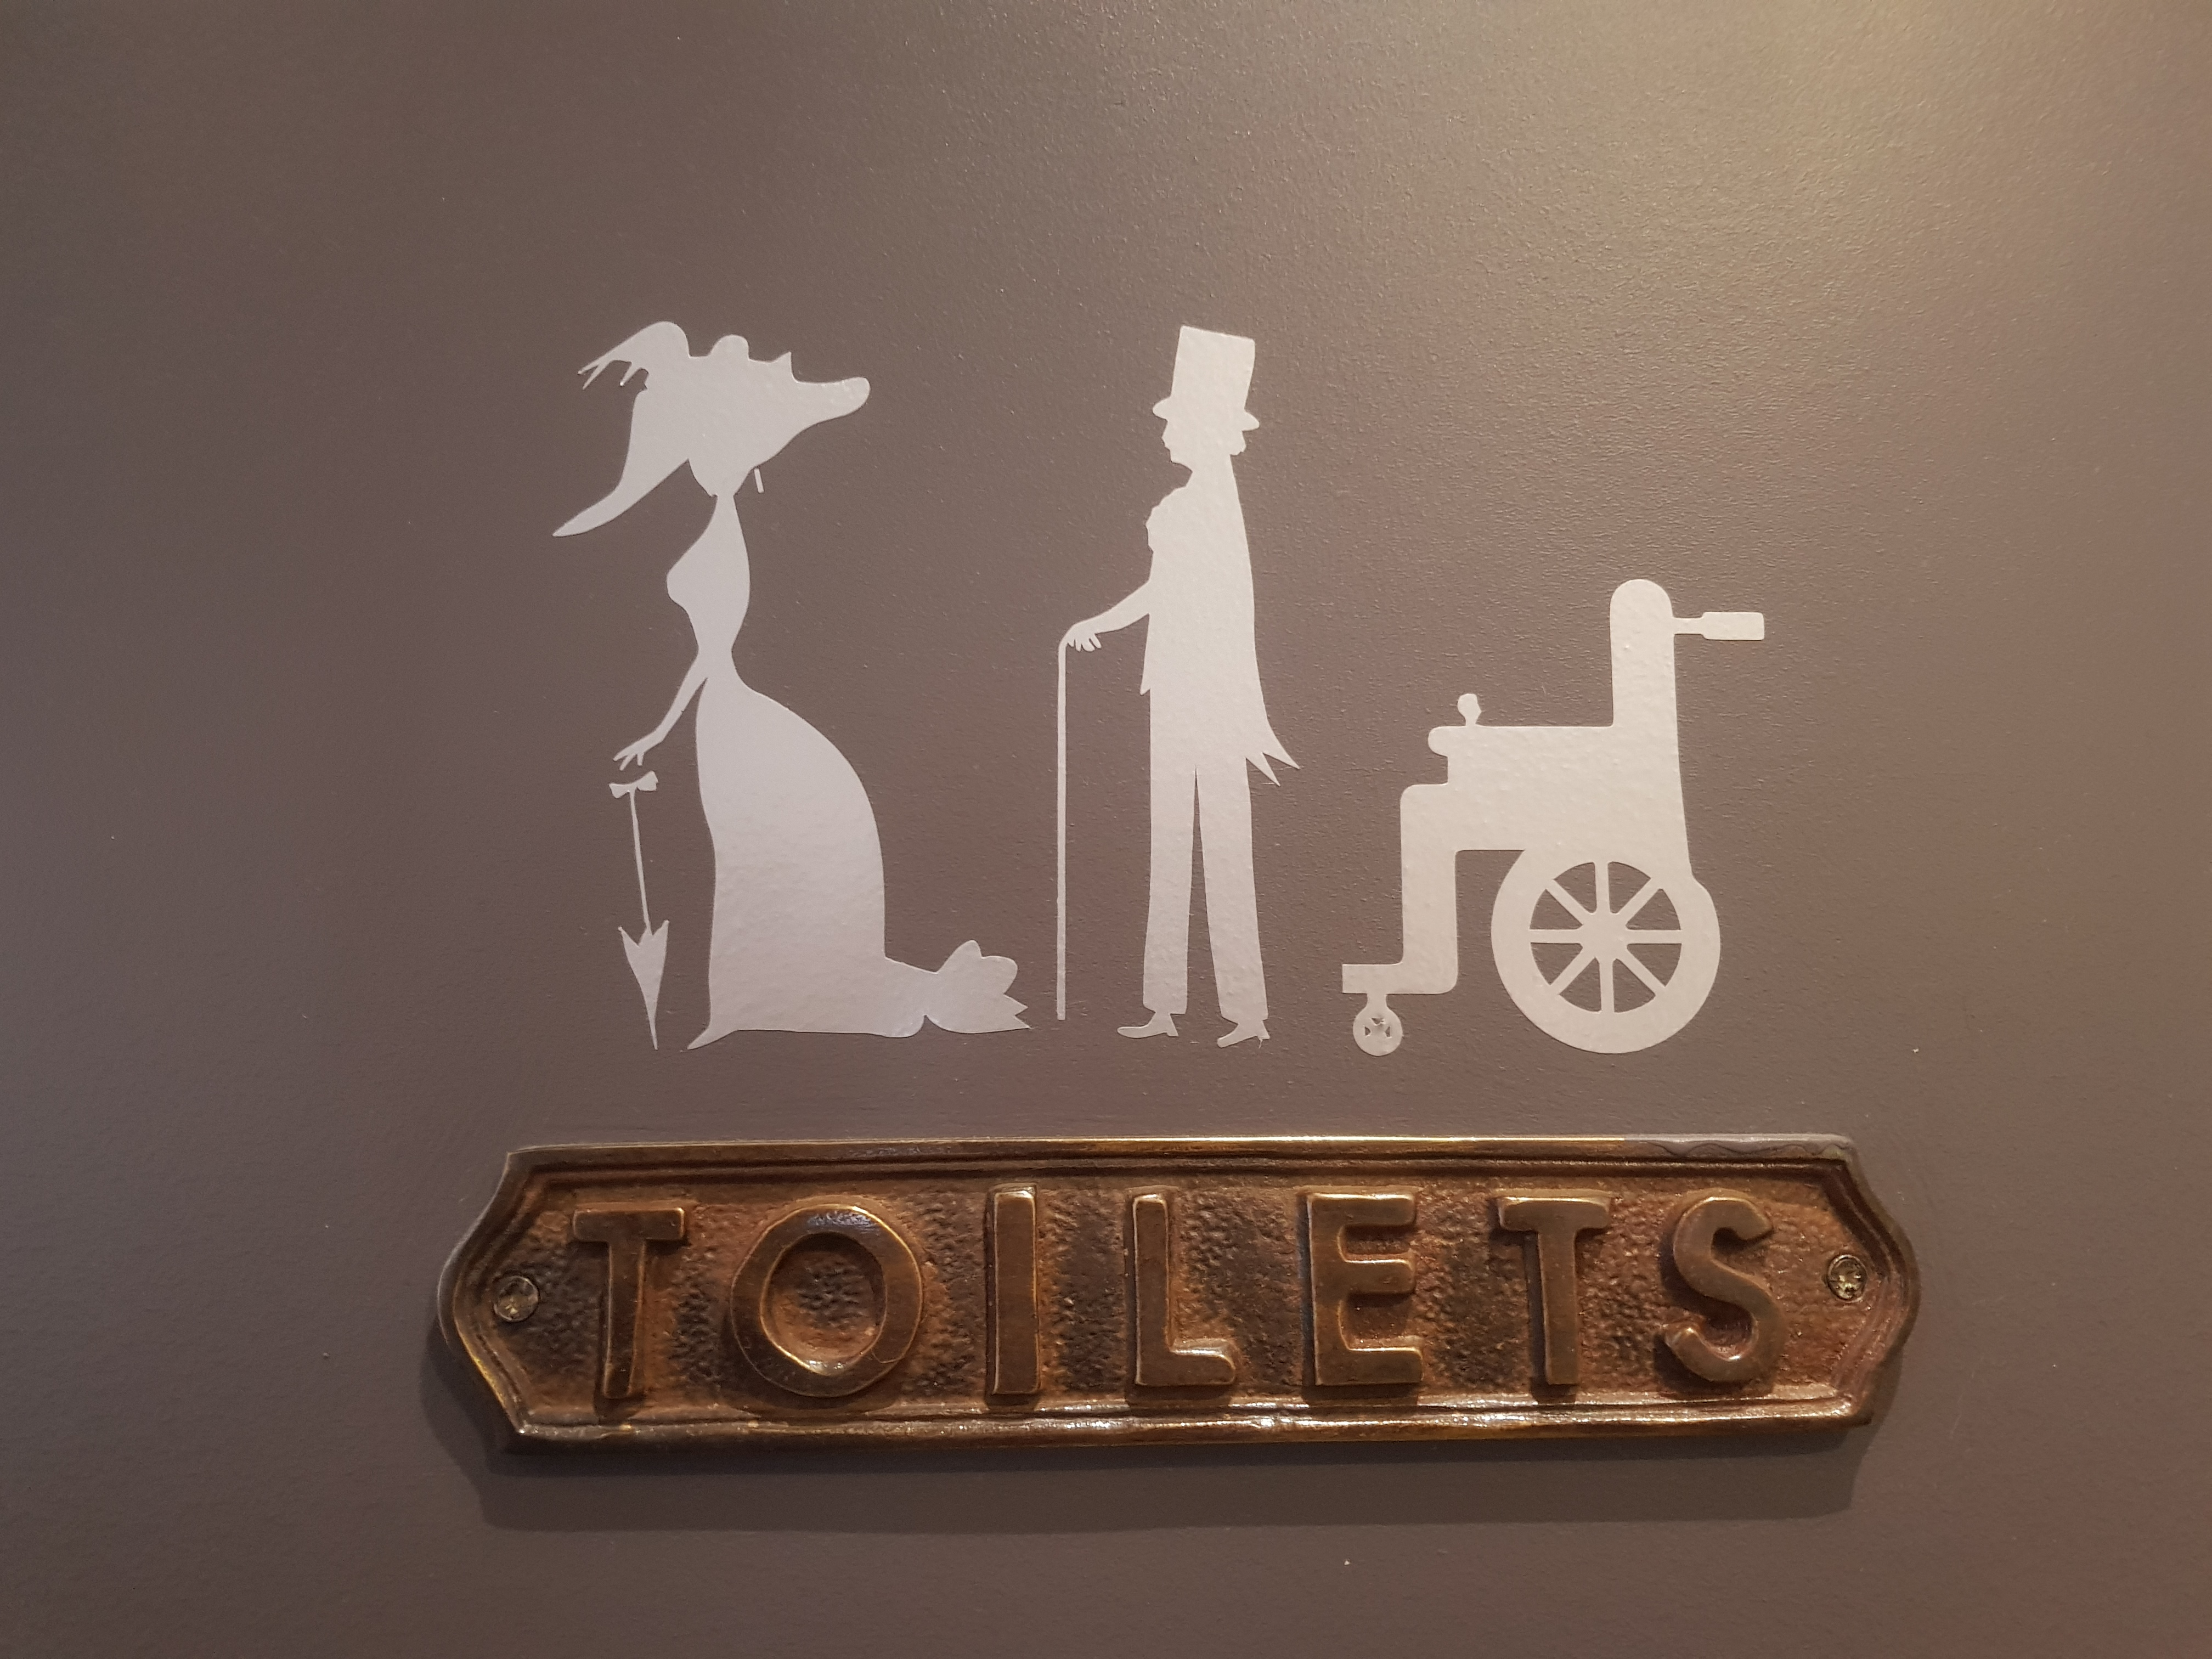 Accessible toilets France